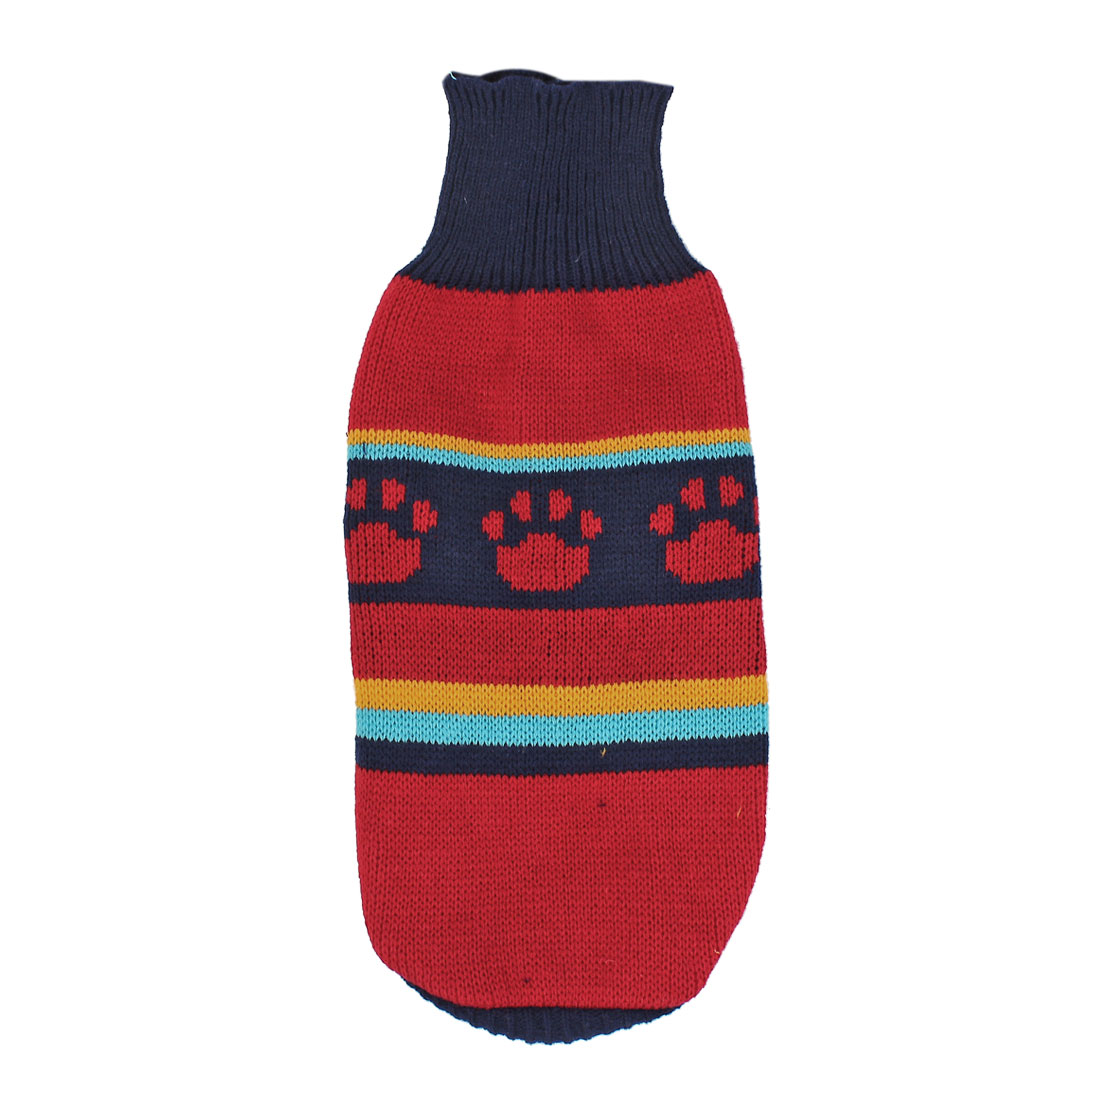 Pet Dog Puppy Claw Print Ribbed Cuff Knitwear Turtleneck Apparel Sweater Dark Blue Red Size XS